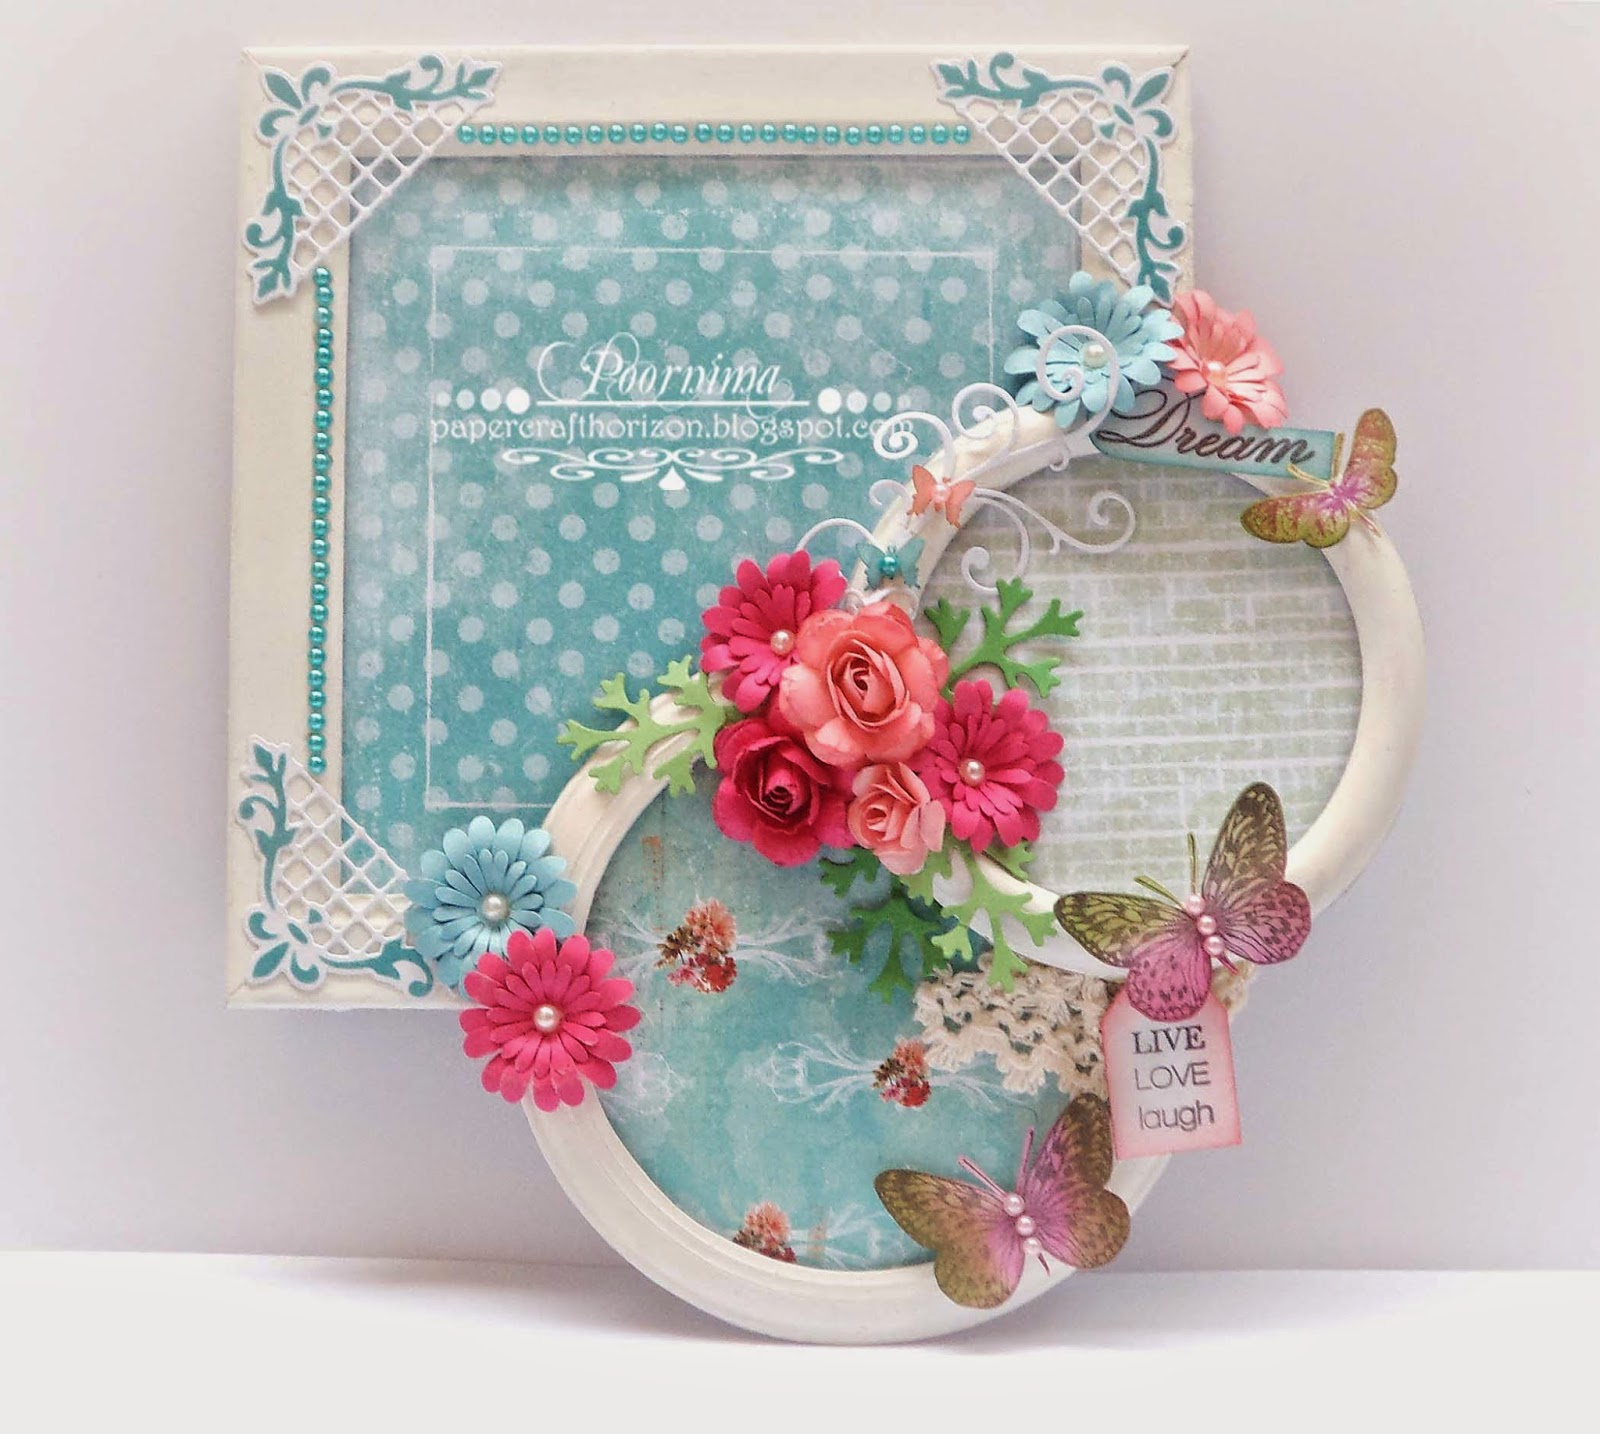 Paper craft horizon april 2015 i have first applied 2 coats of white acrylic paint on all the three pieces then added pretty prima pattern papersi have then glued them hot glue and jeuxipadfo Choice Image